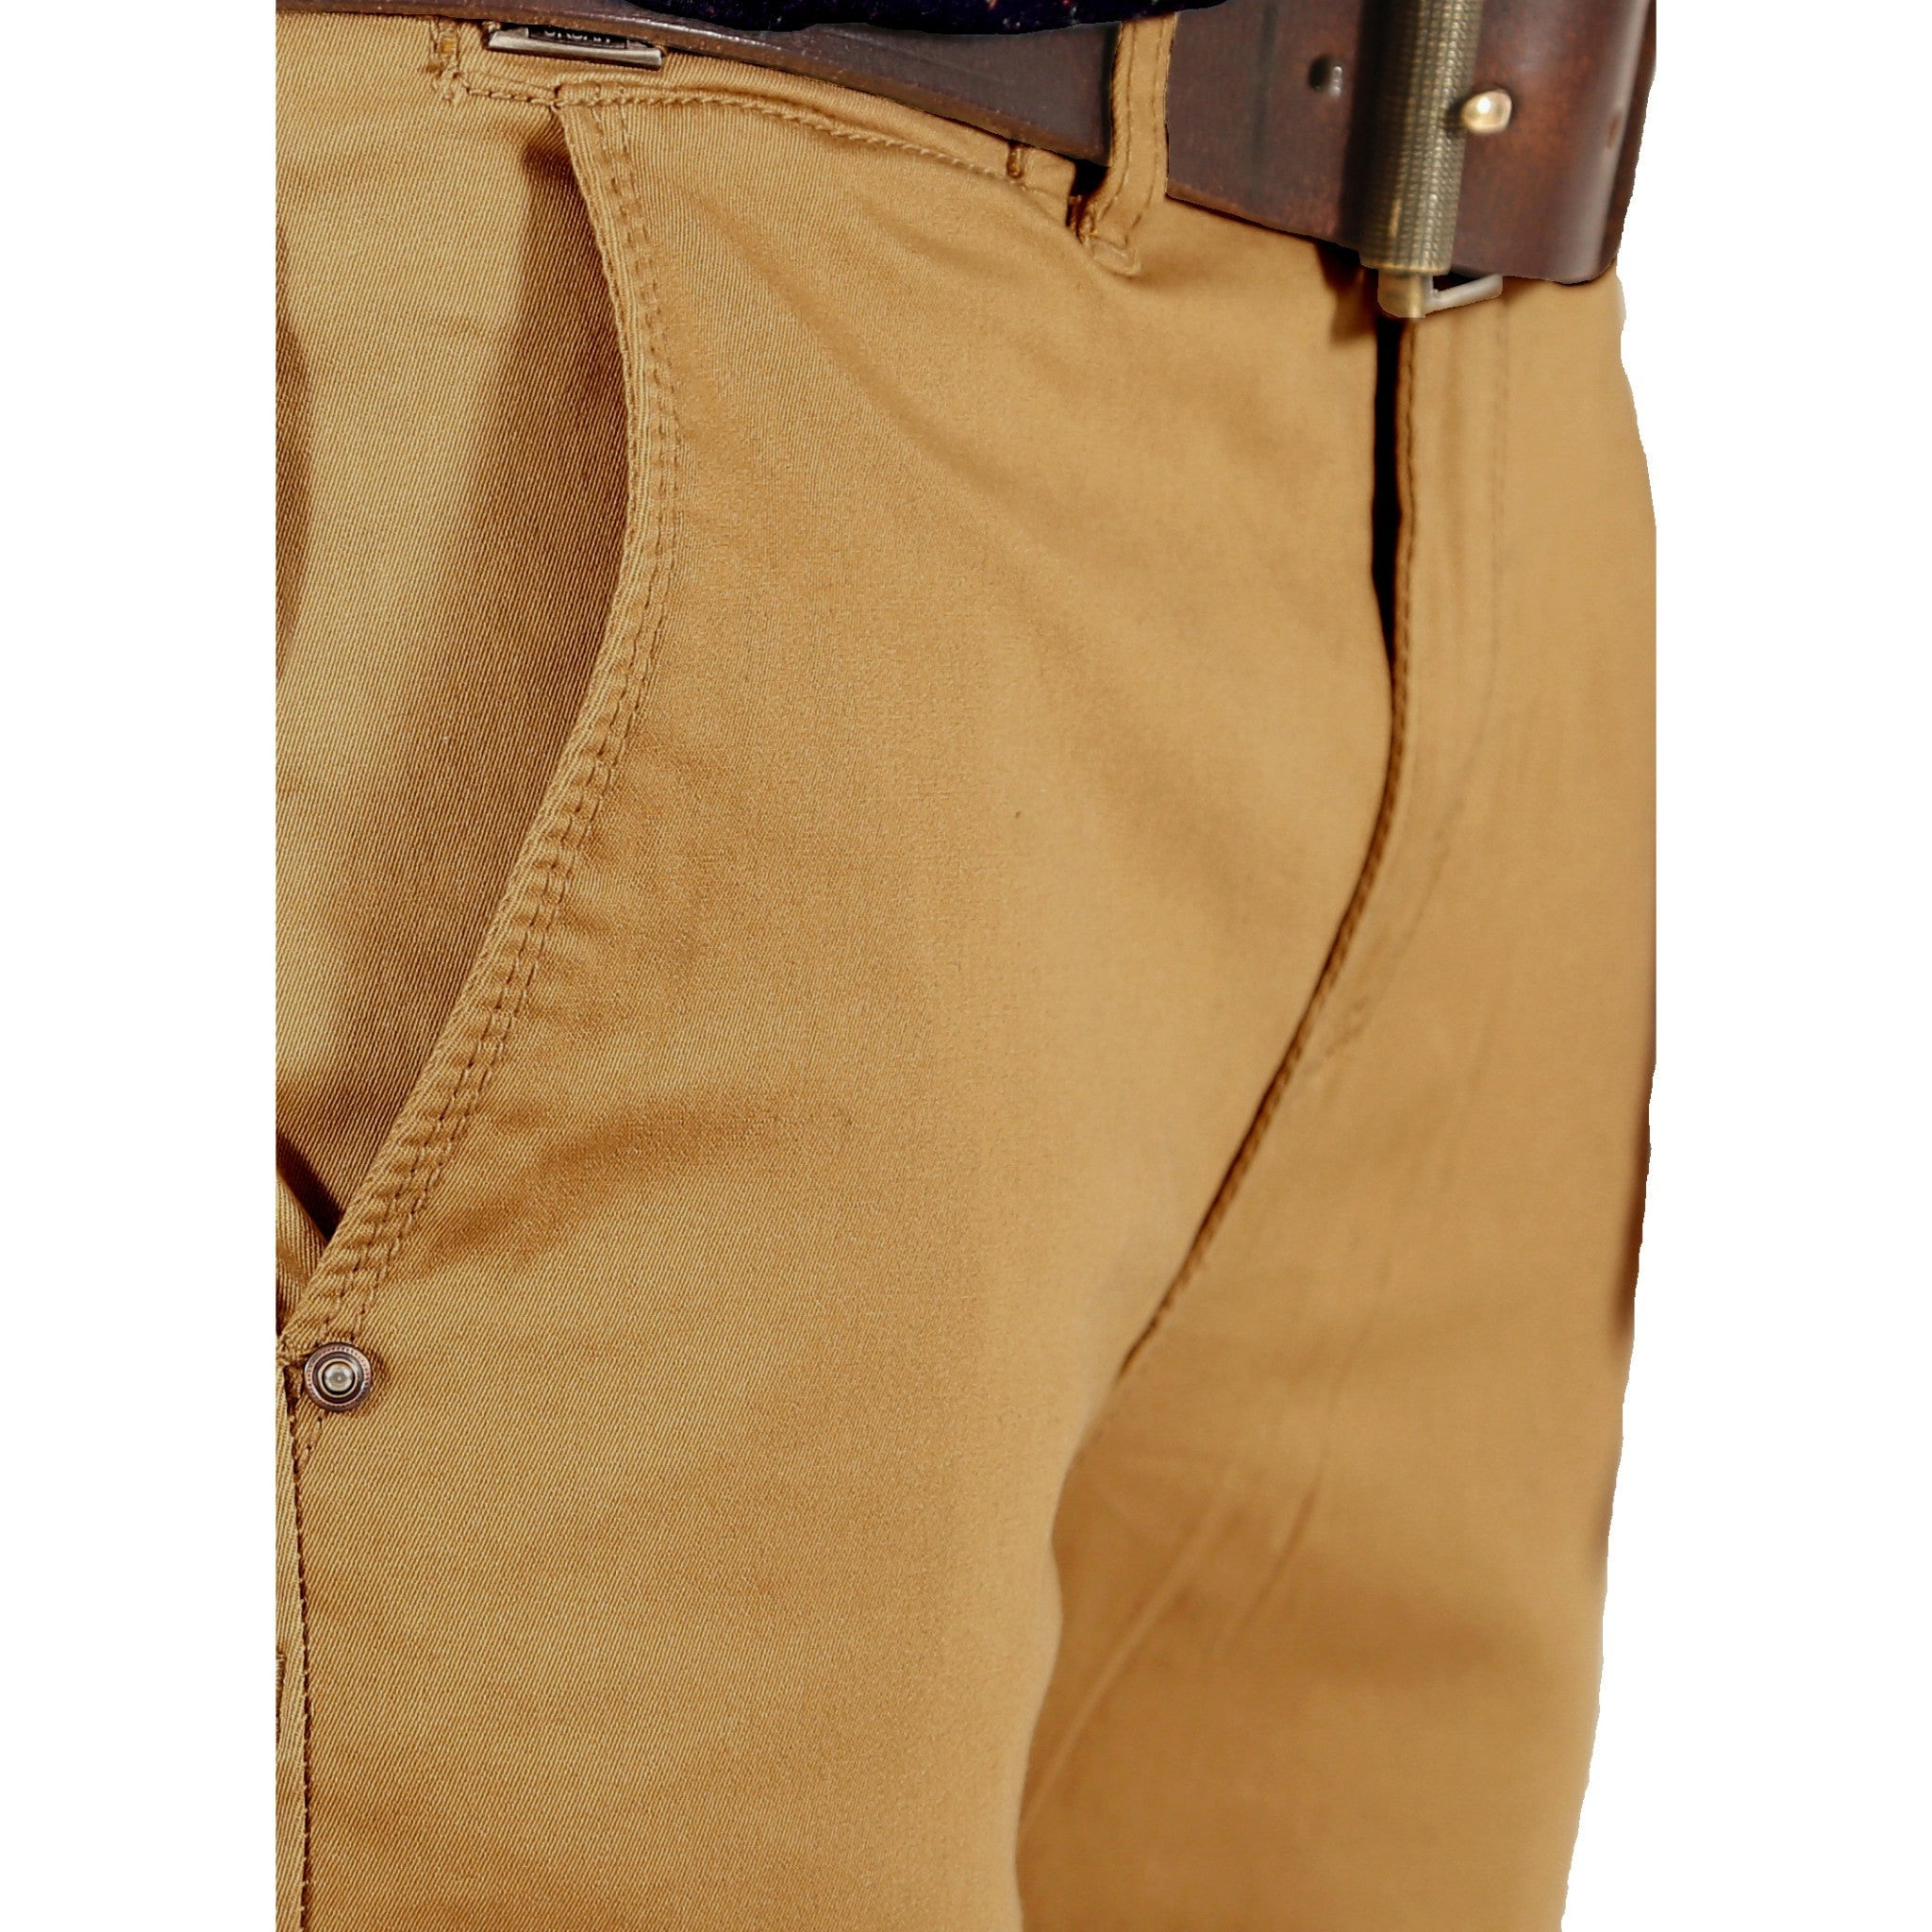 Burlywood Elastene Trouser close up view